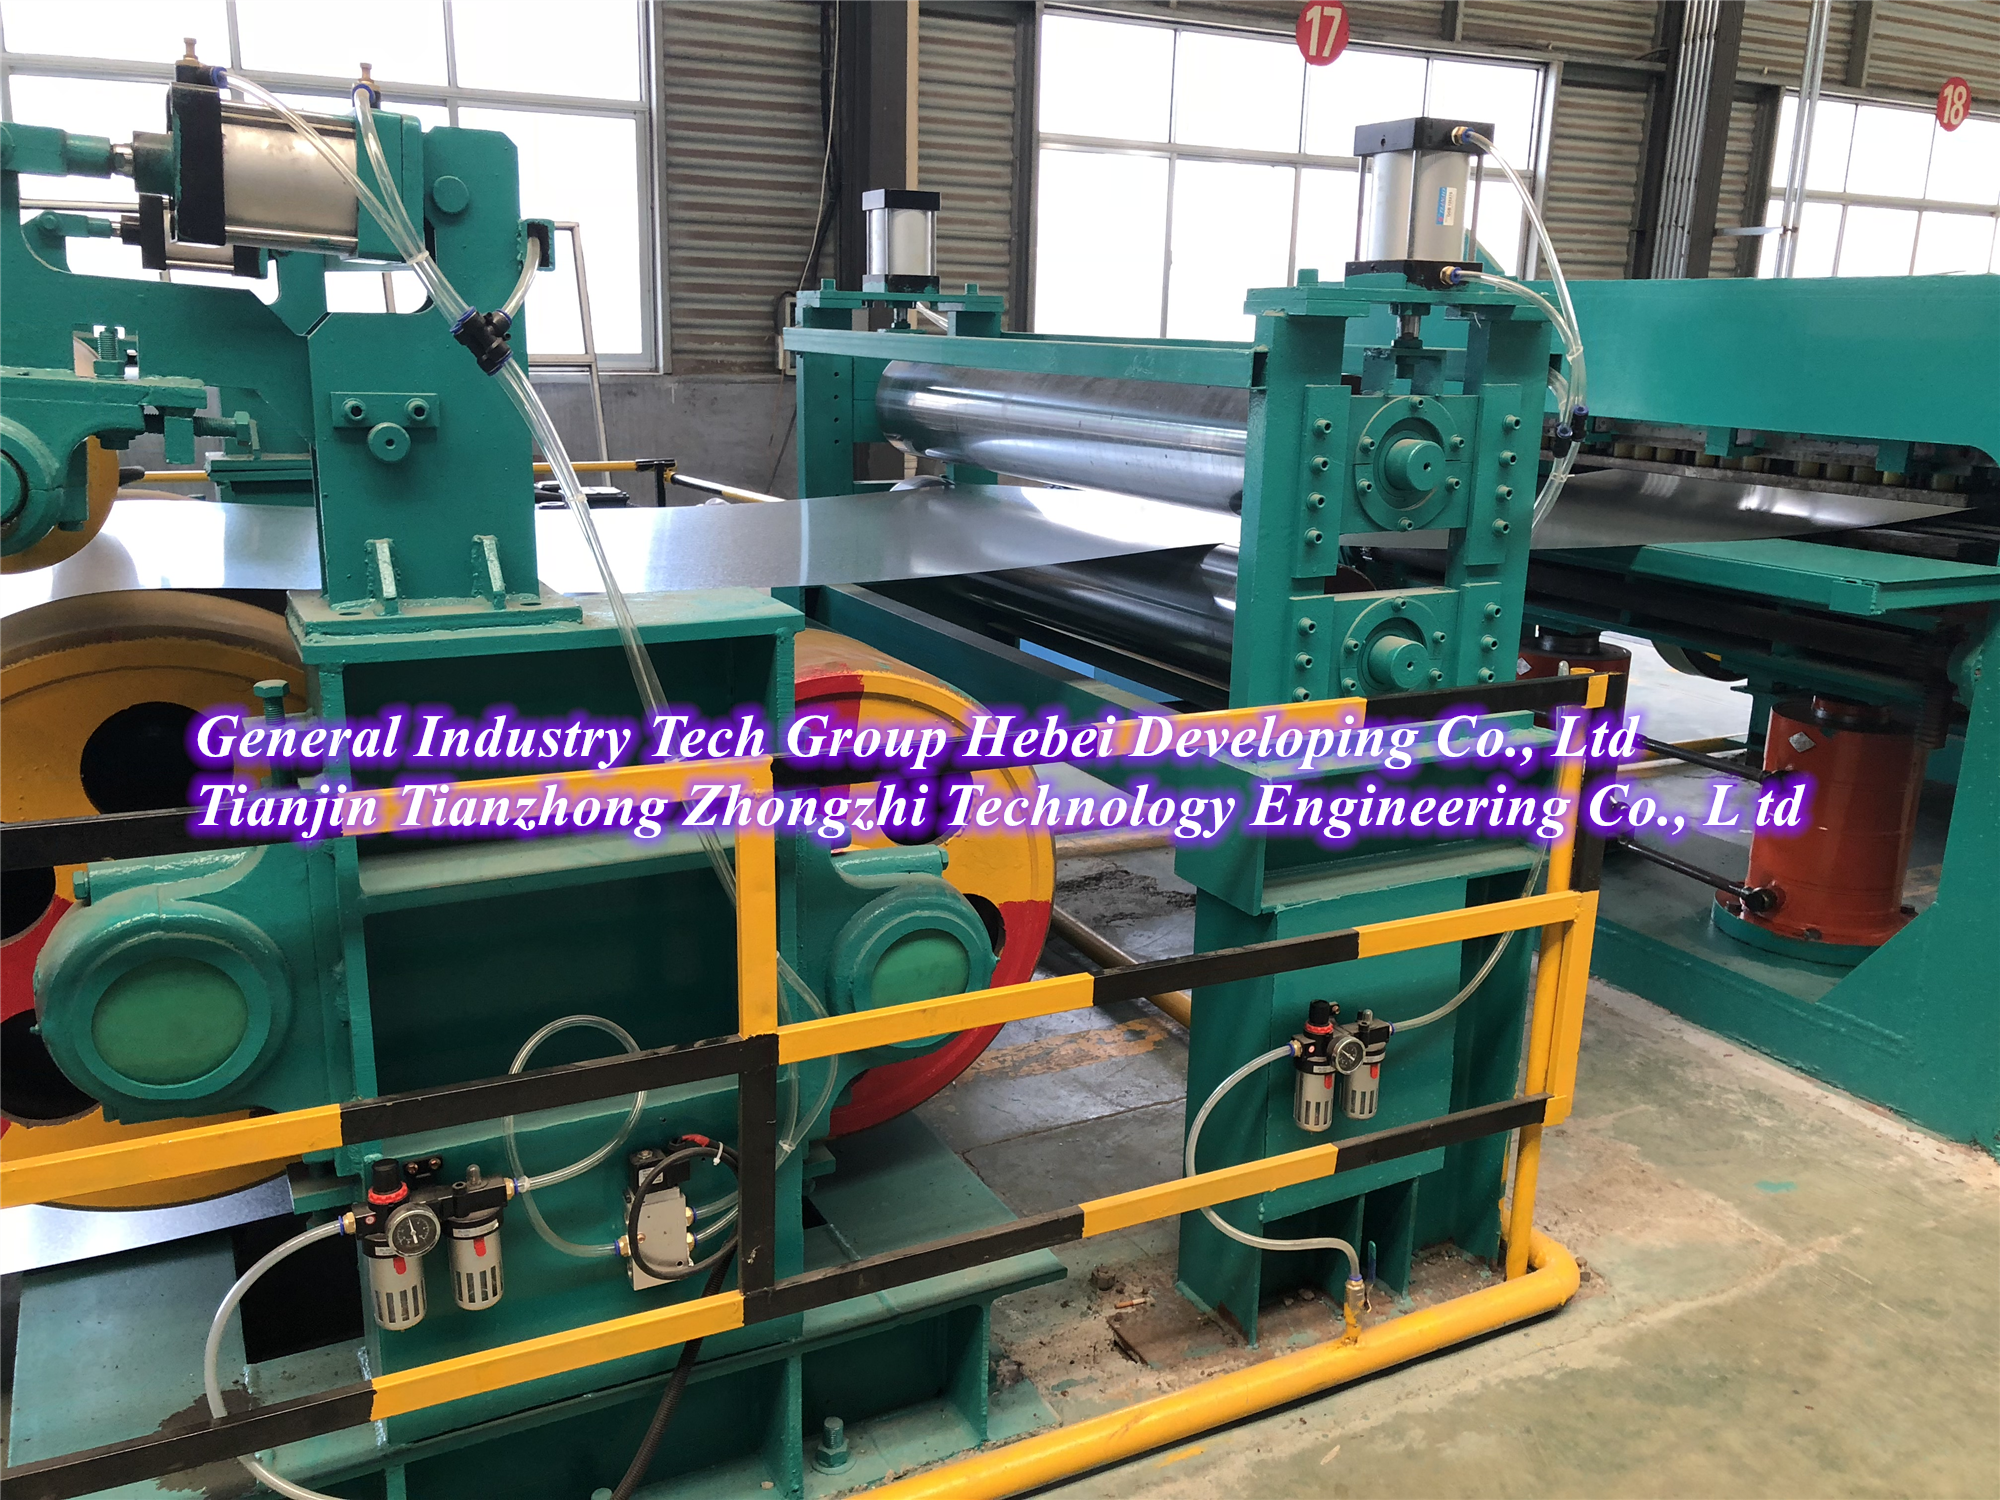 Process flow of Coil colar coating production line